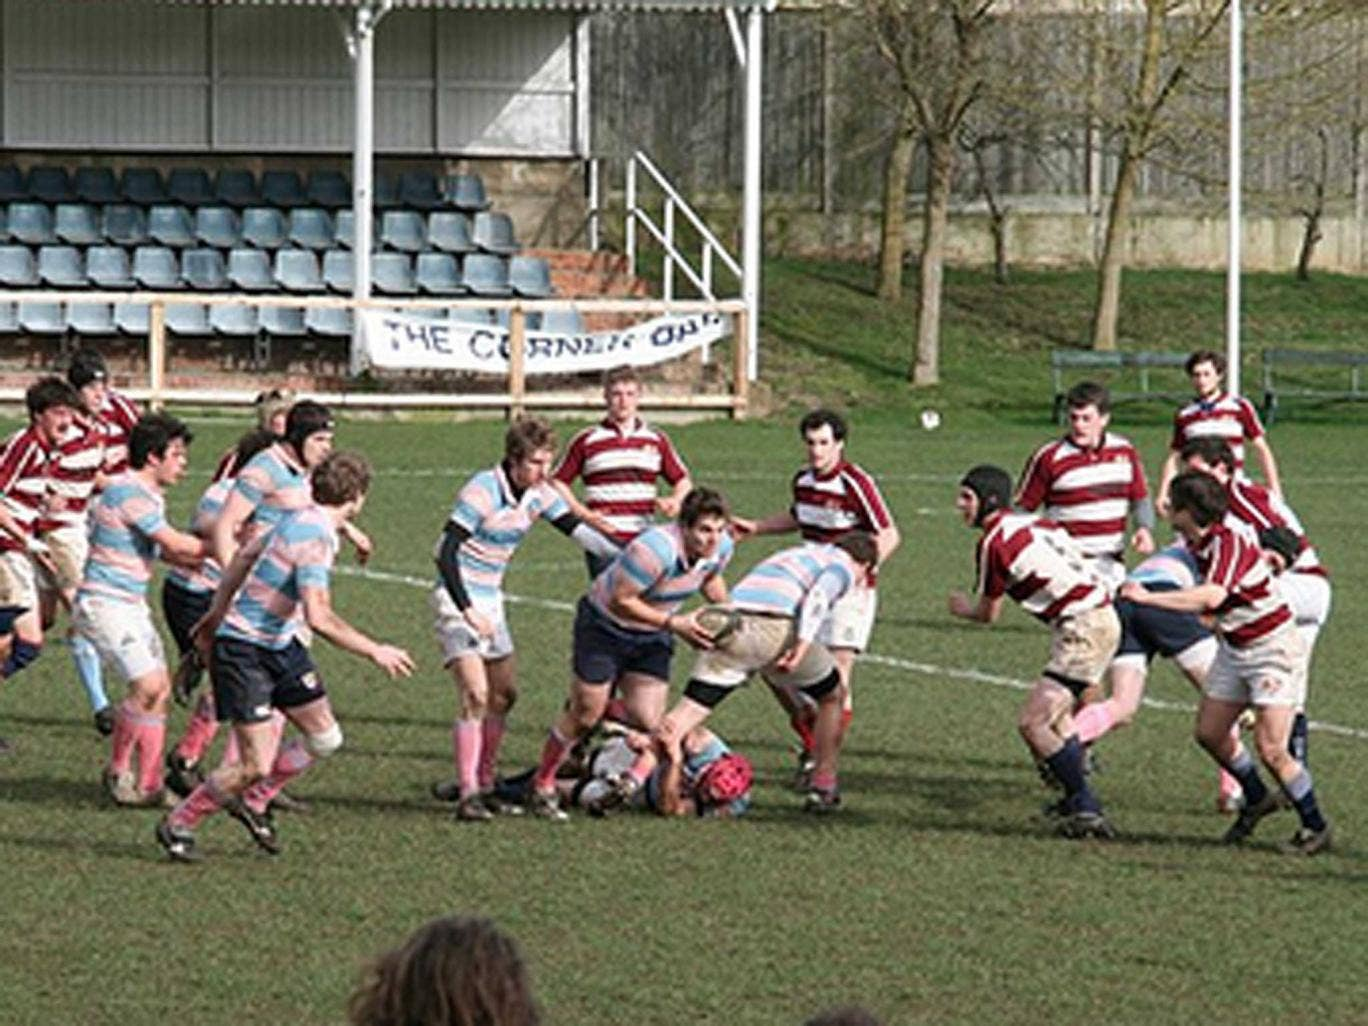 A historic image of Pembroke College's rugby player's in action, from Rugby Football Club's homepage